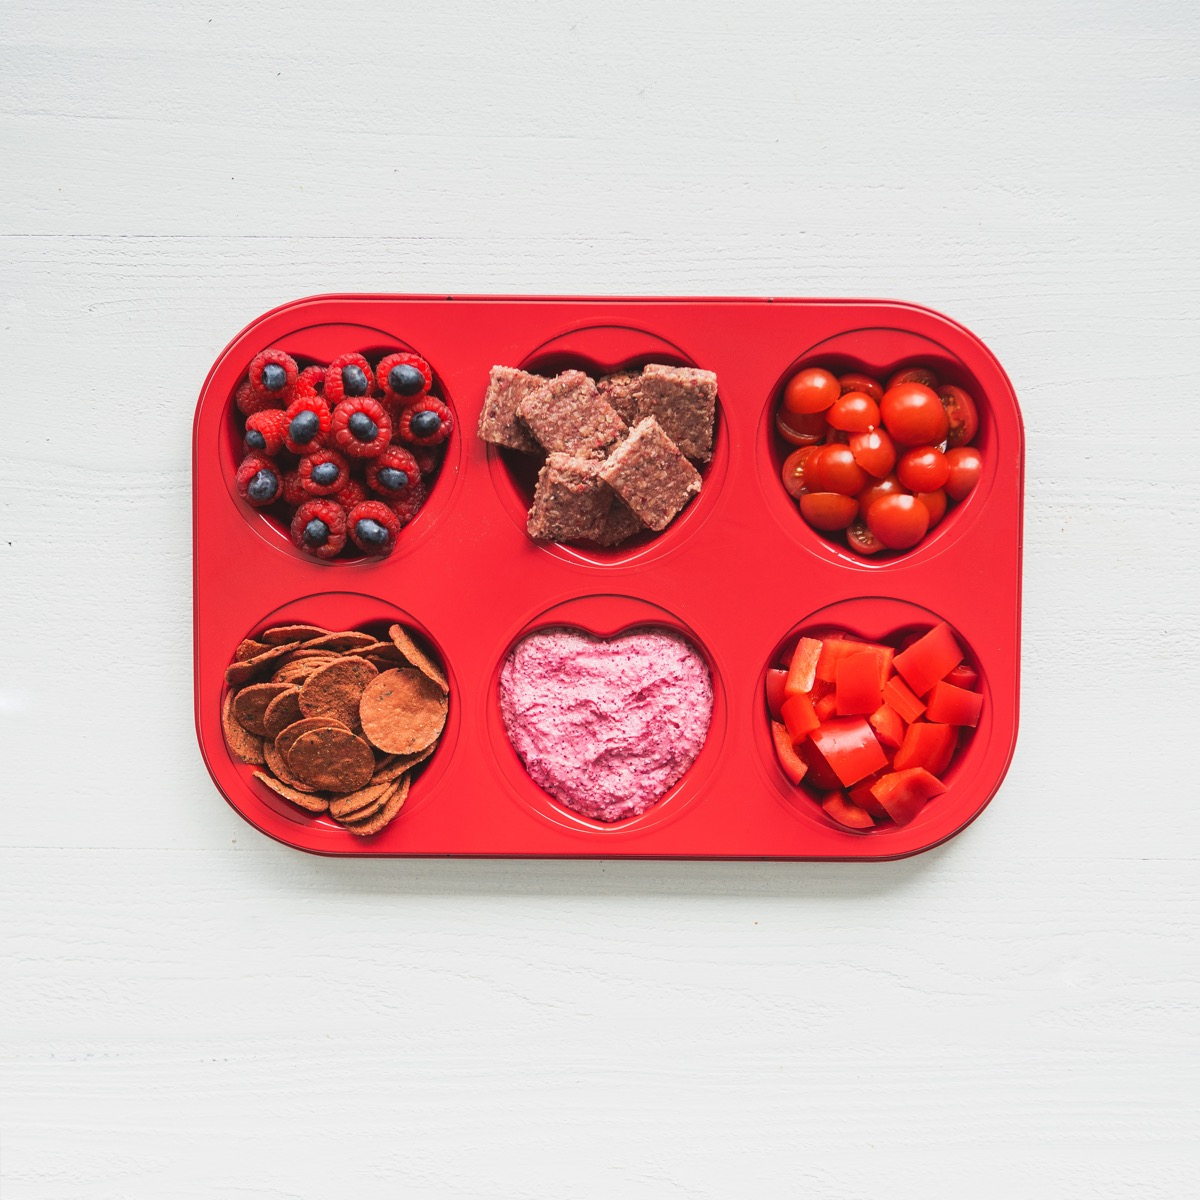 Snacktivity Heart Tray